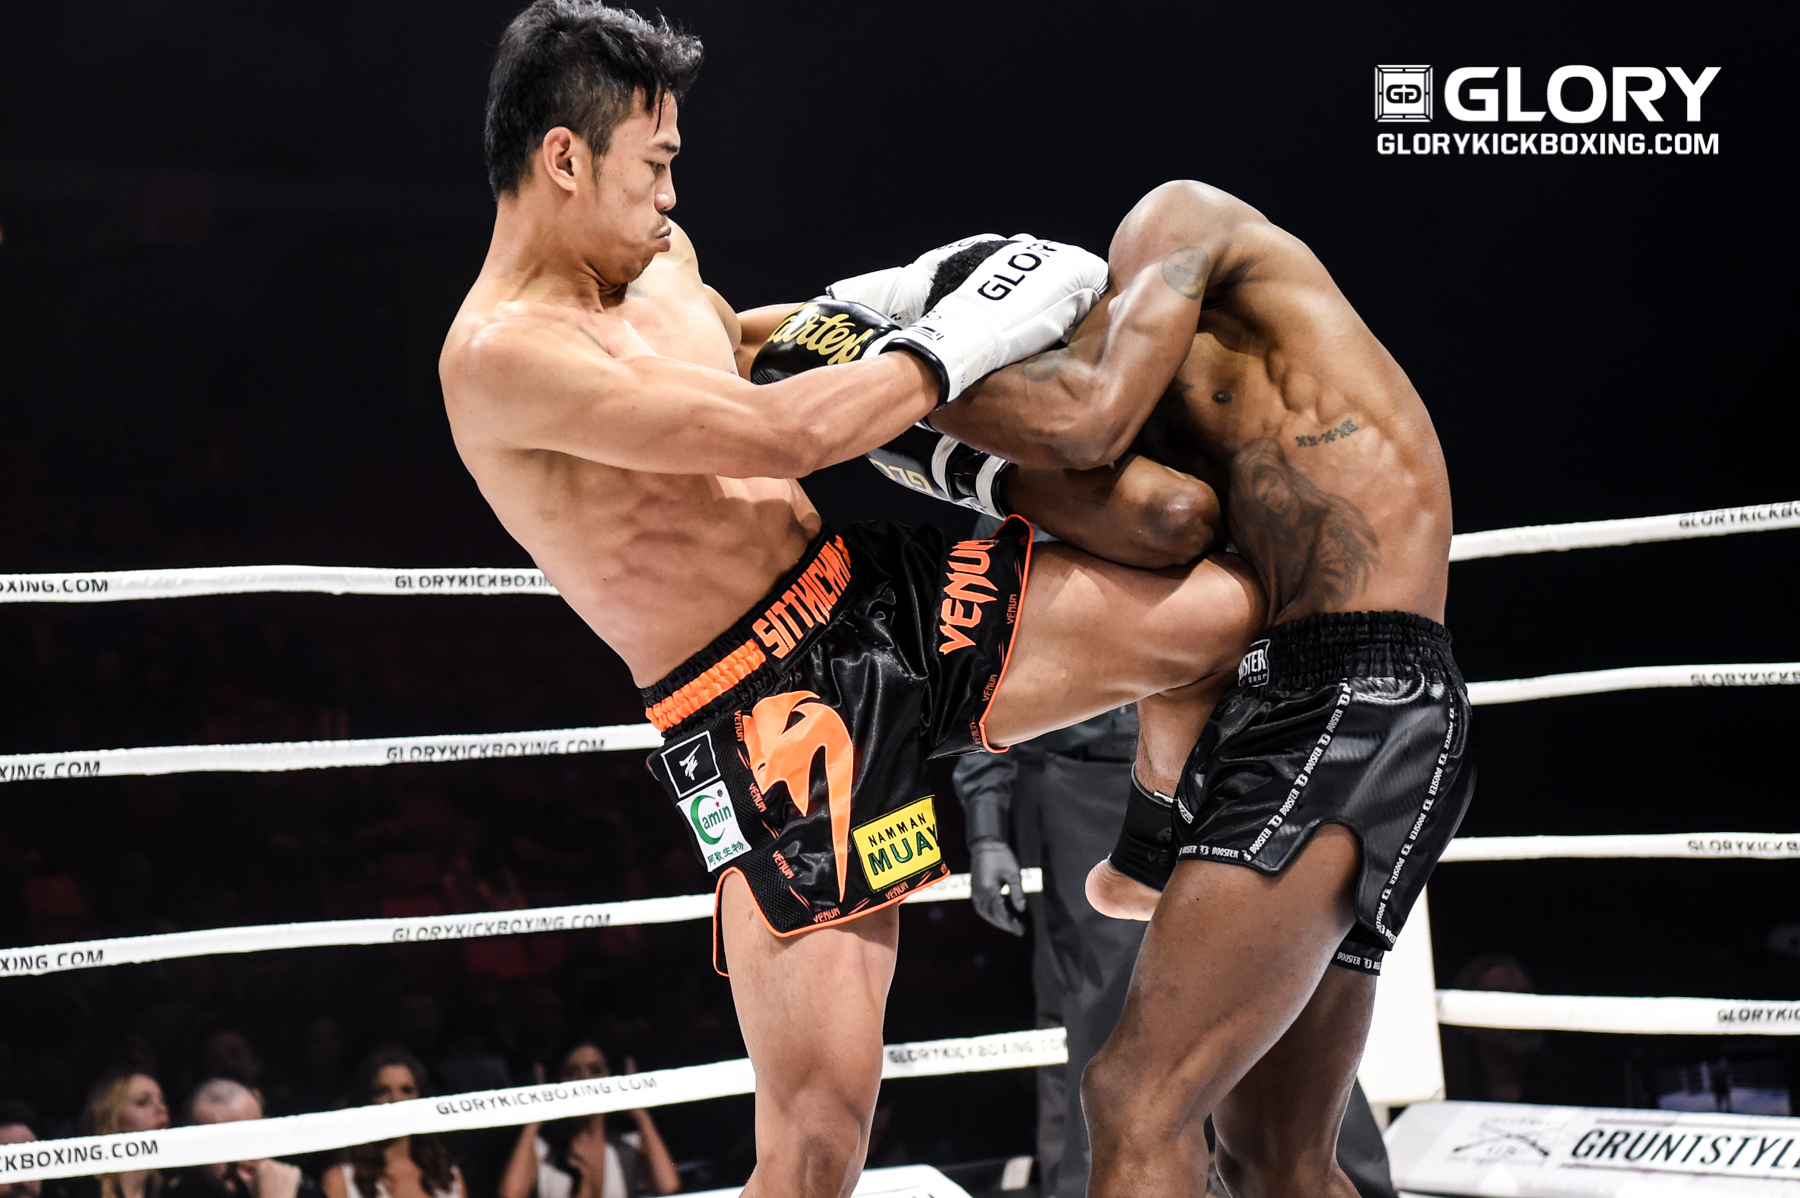 Signature Strikes: The keys to lightweight champion Sitthichai's dominance of his division